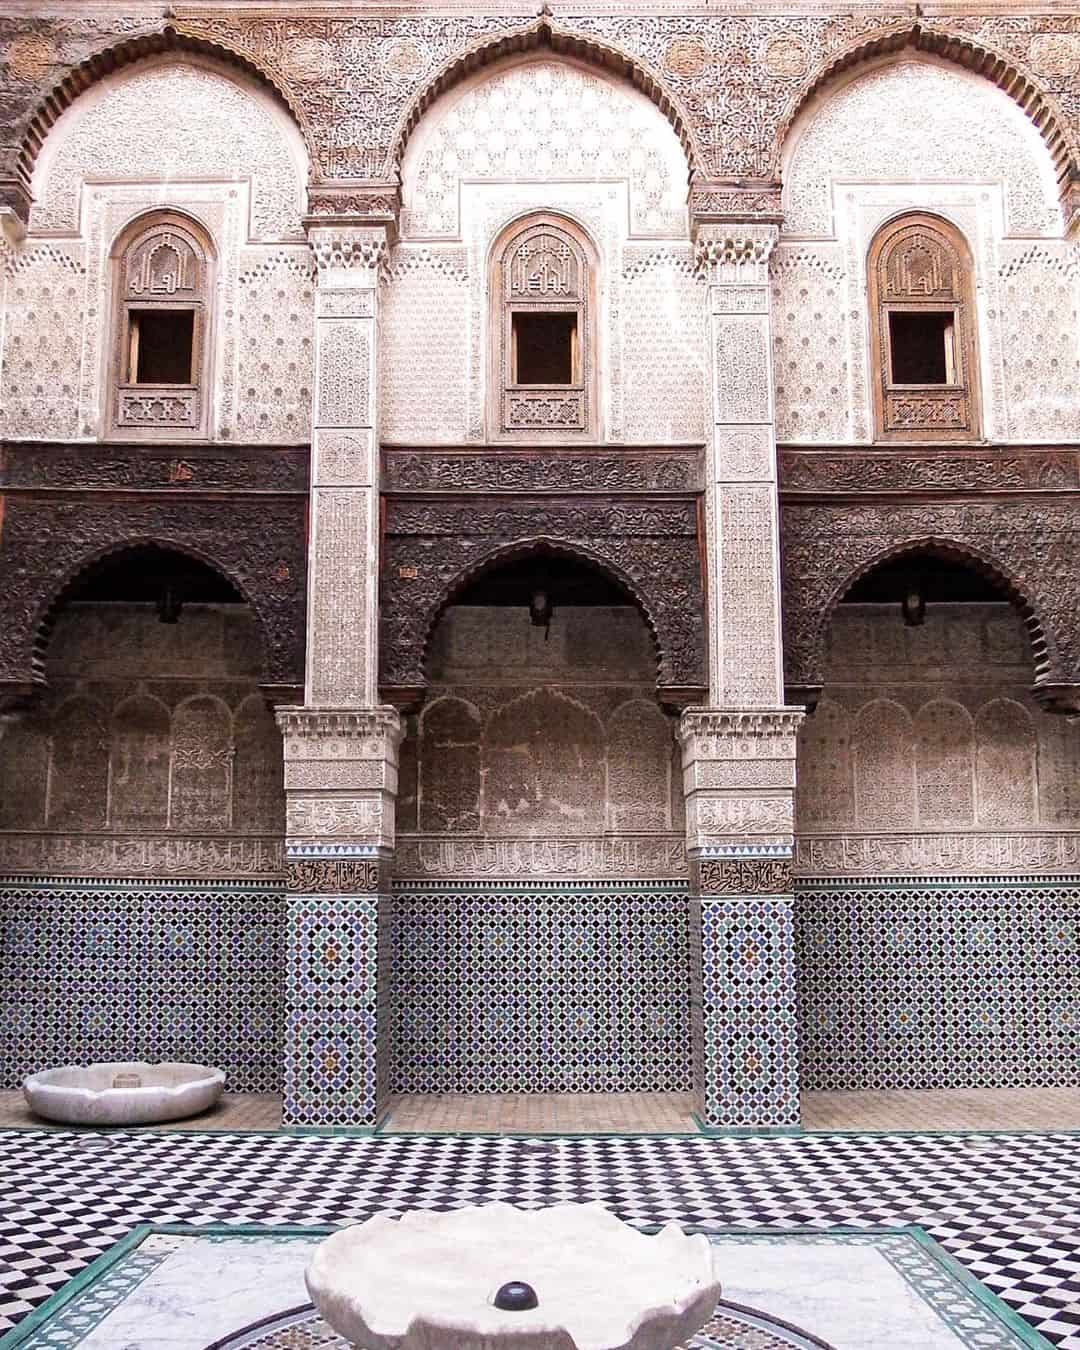 Admire the beautiful Islamic architecture of Fes